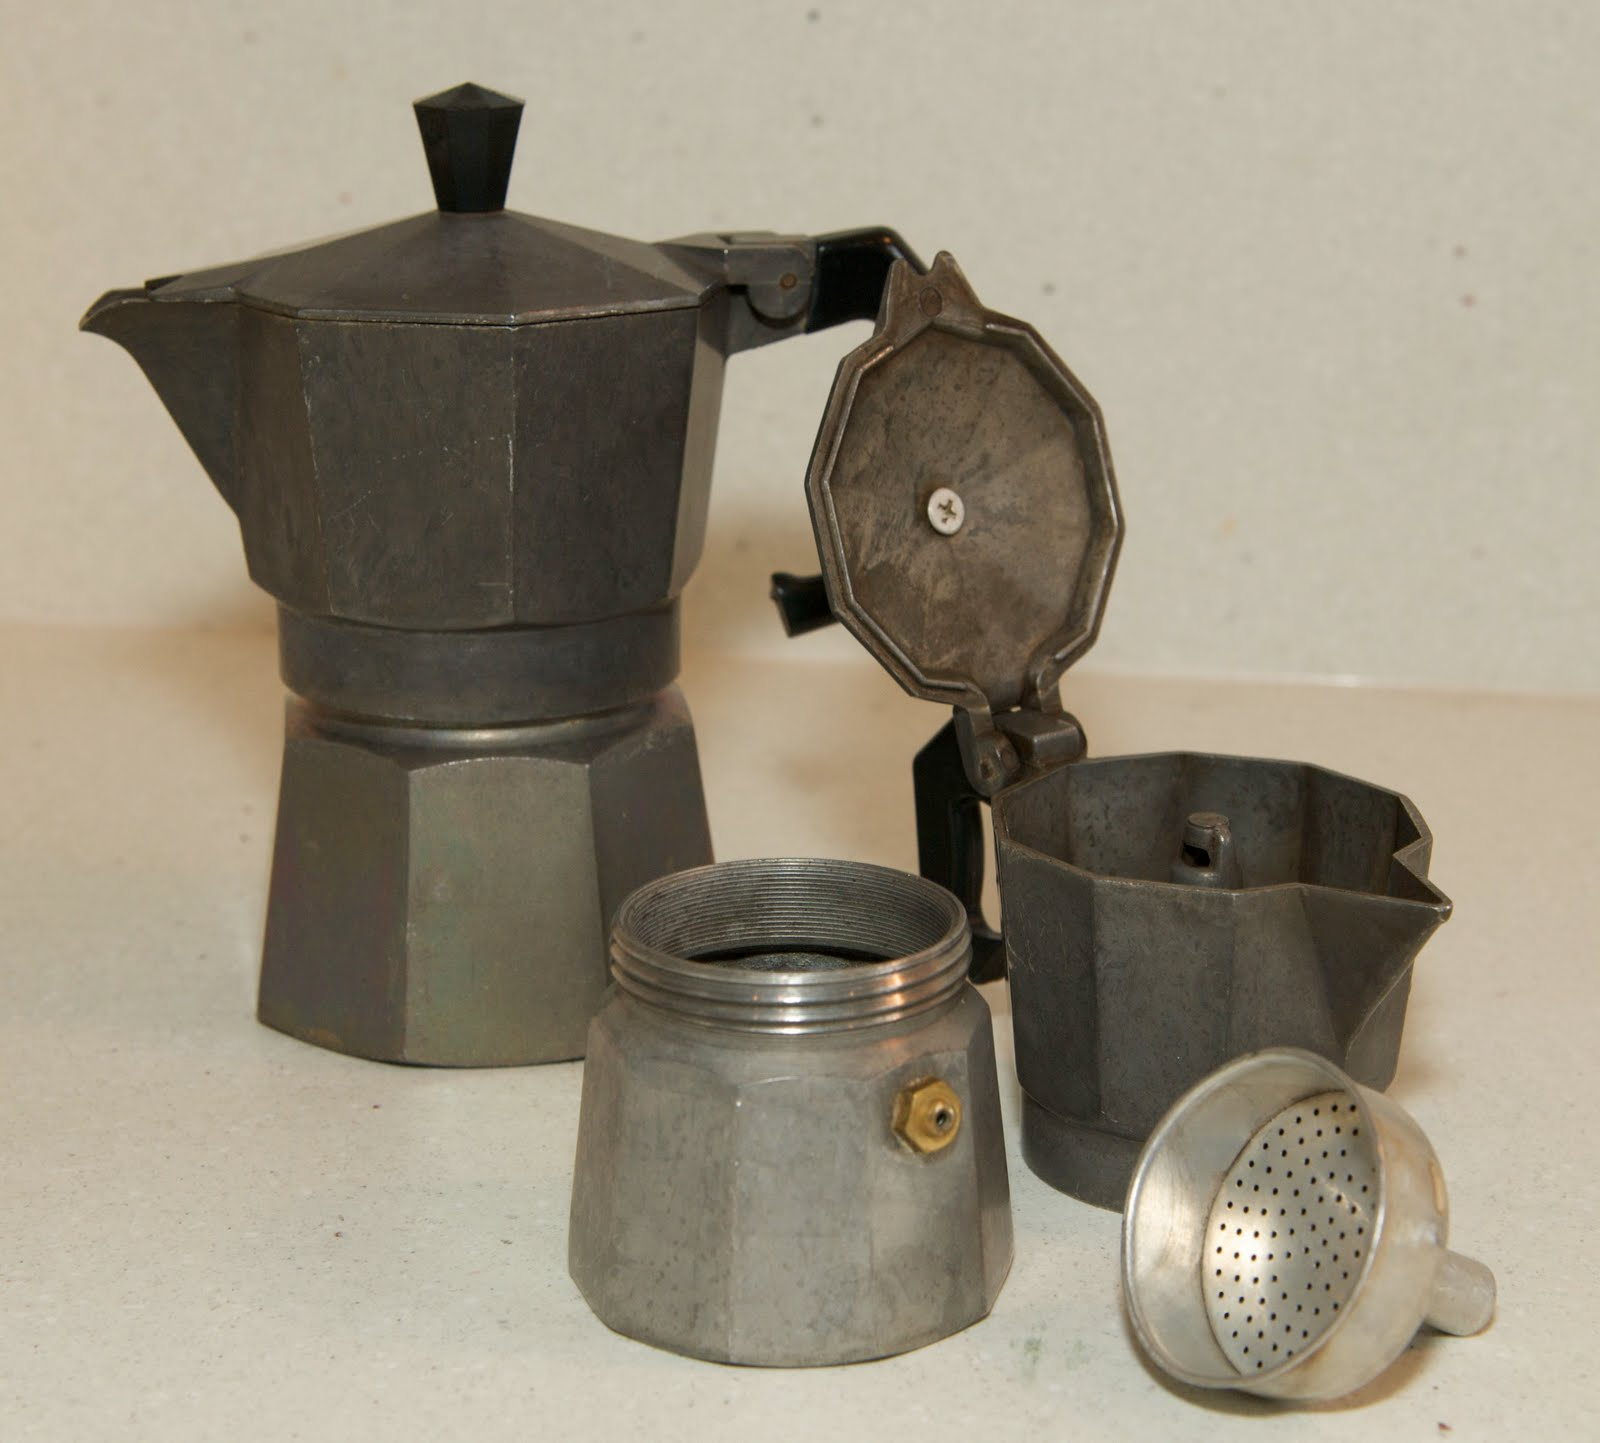 Cuban Coffee Maker Name : Betty Crapper: Giveaway, Stovetop Espresso Maker & Cuban Coffee